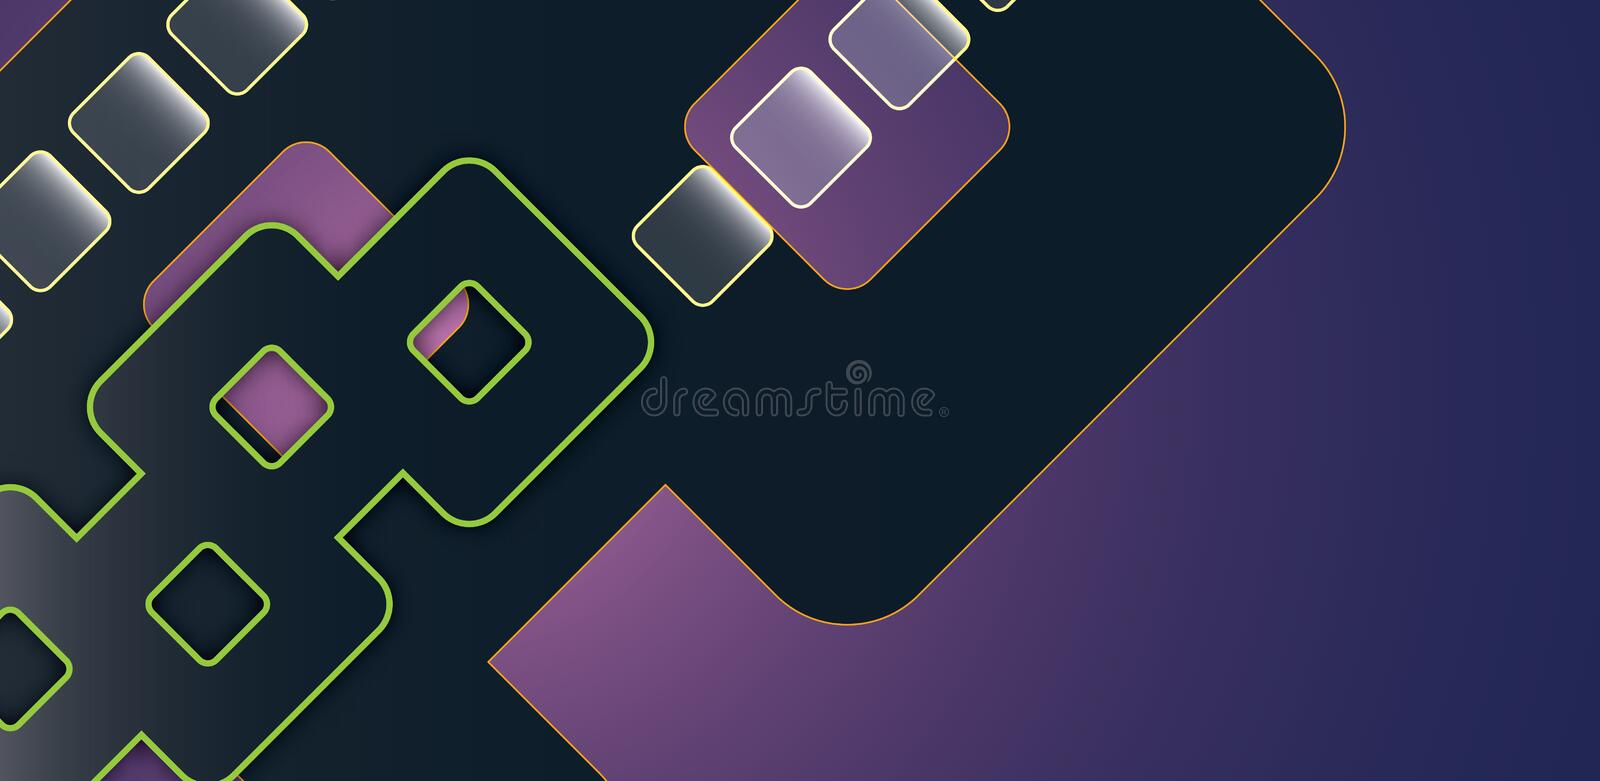 Abstract geometric rectangles forms on purple background stock photography